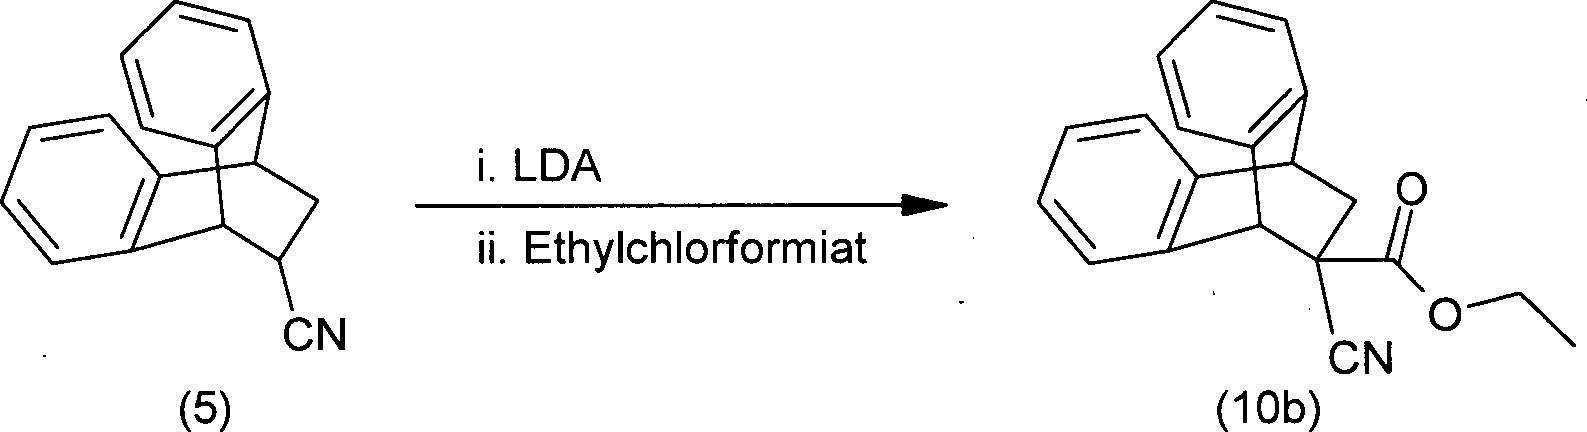 DE102009046131A1 - Alternative synthesis of 1 1-substituted olefins